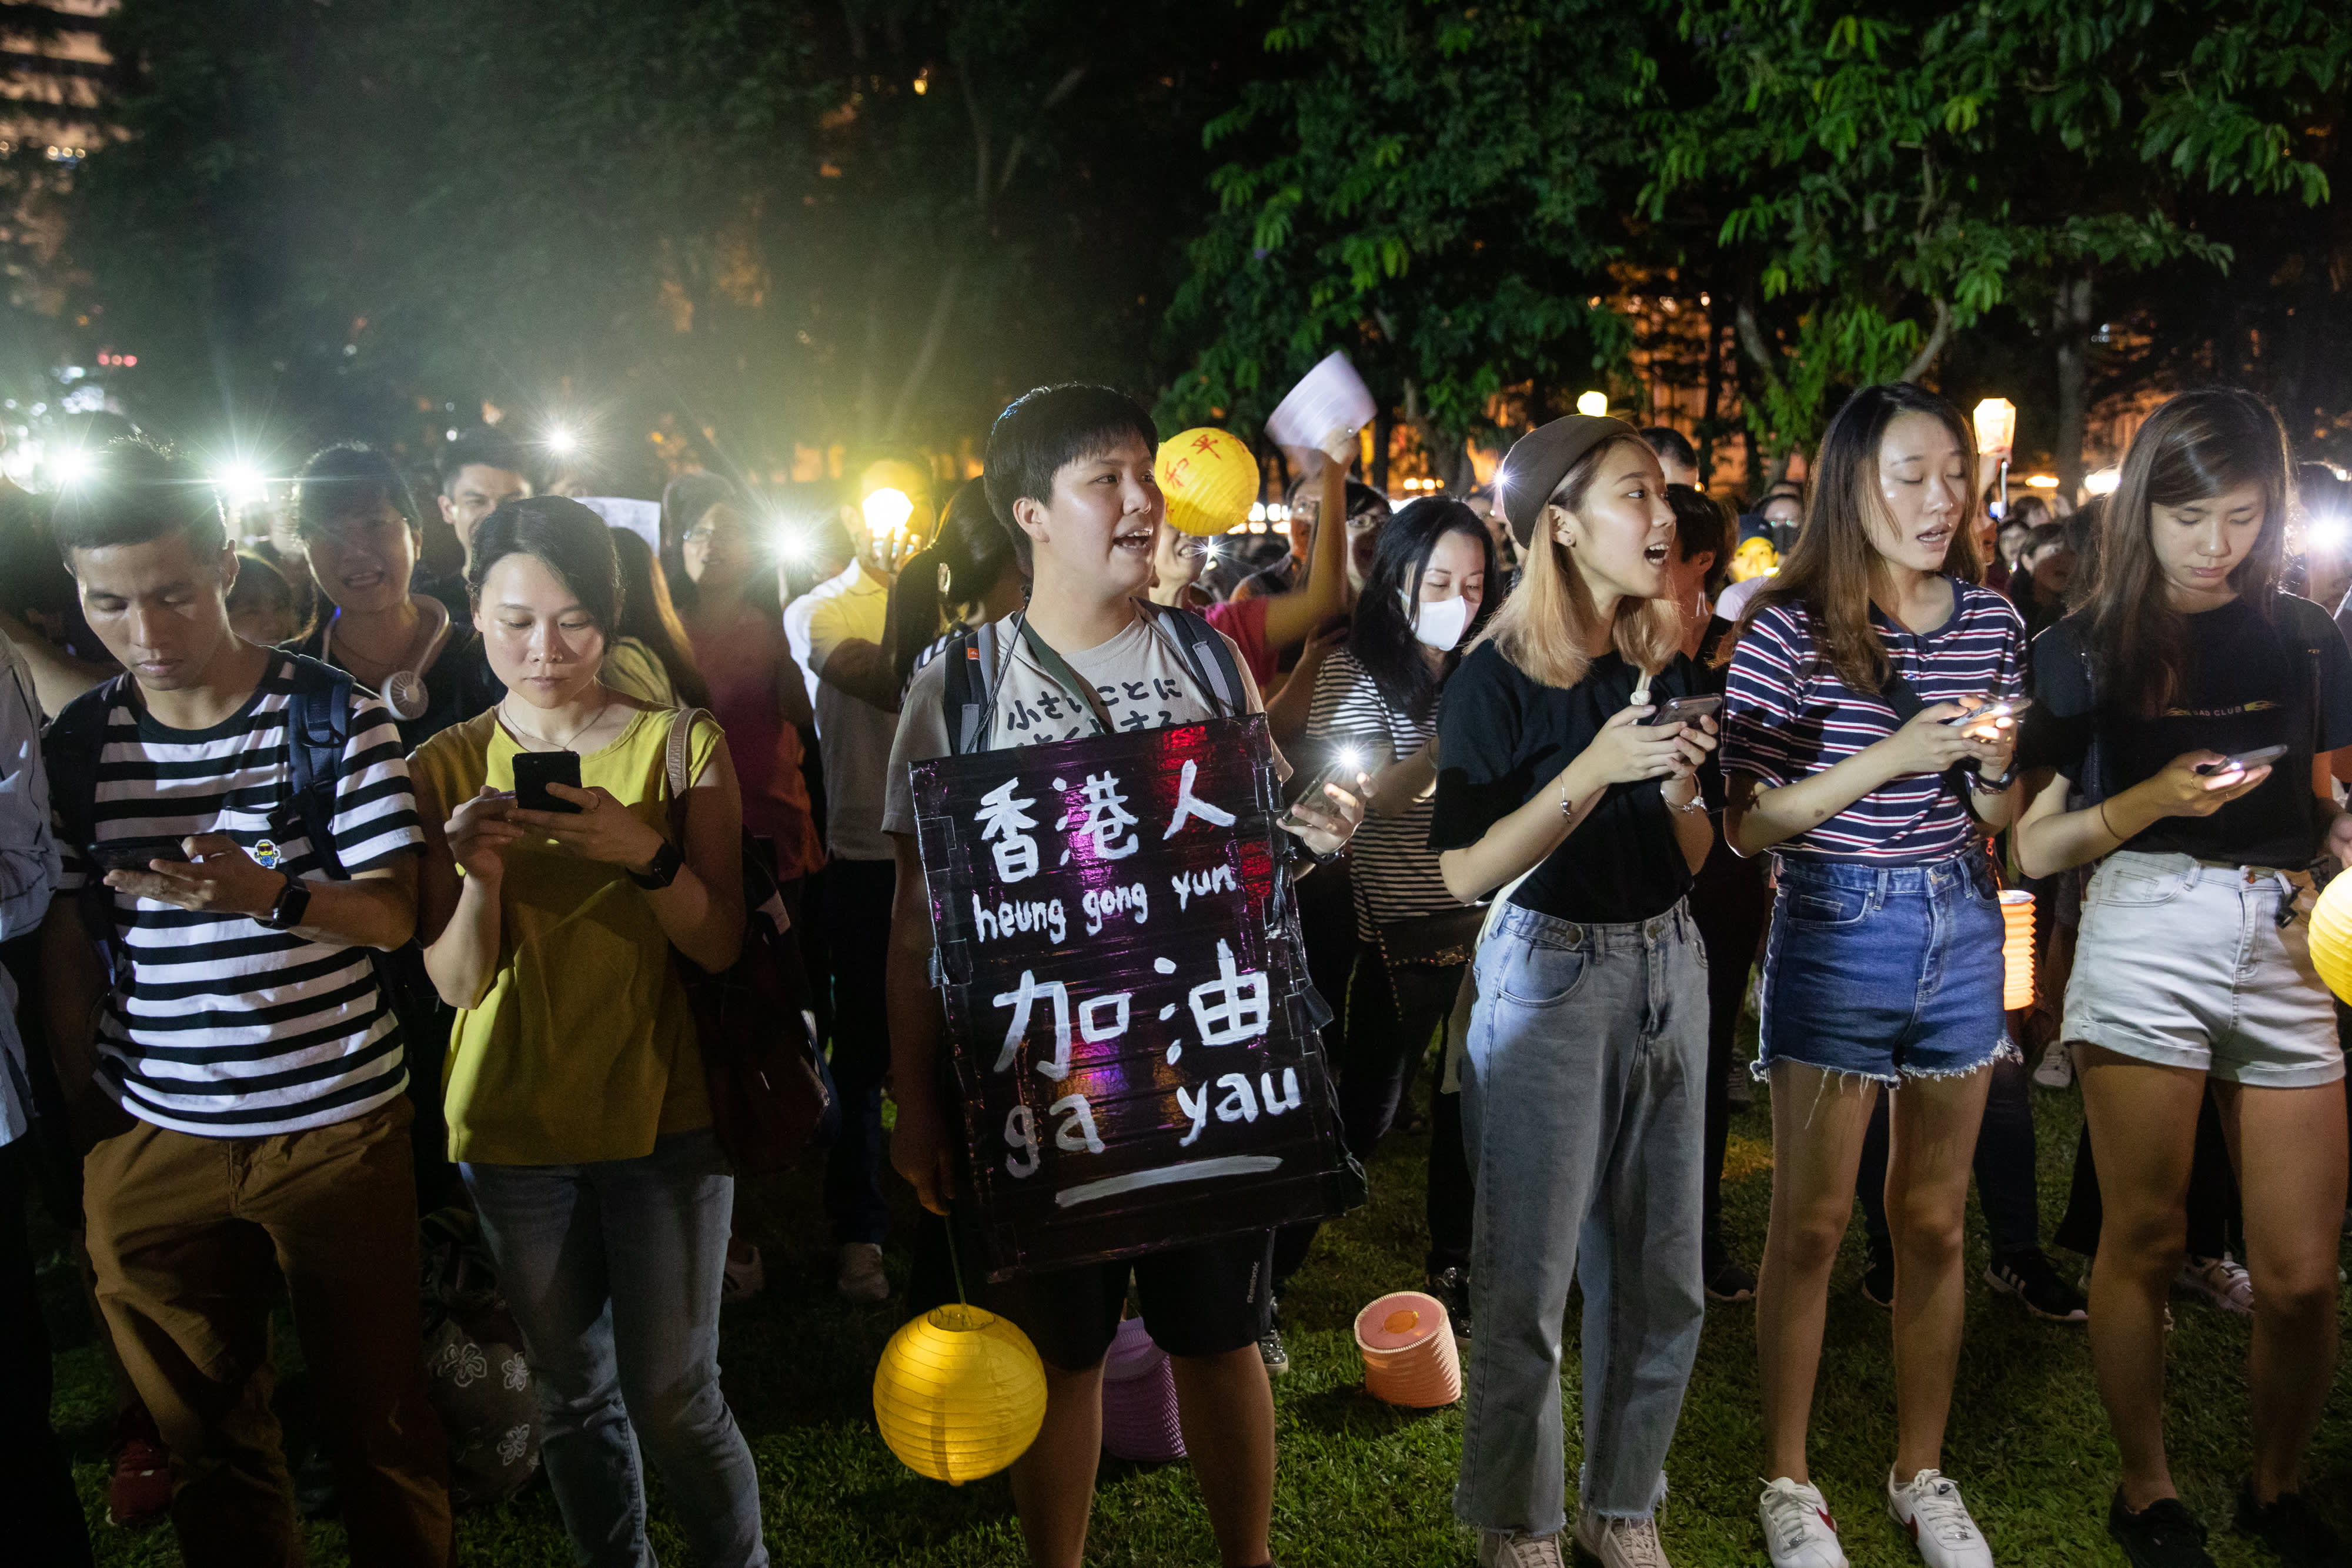 Hong Kong protesters plan mall sit-ins, gathering outside British consulate